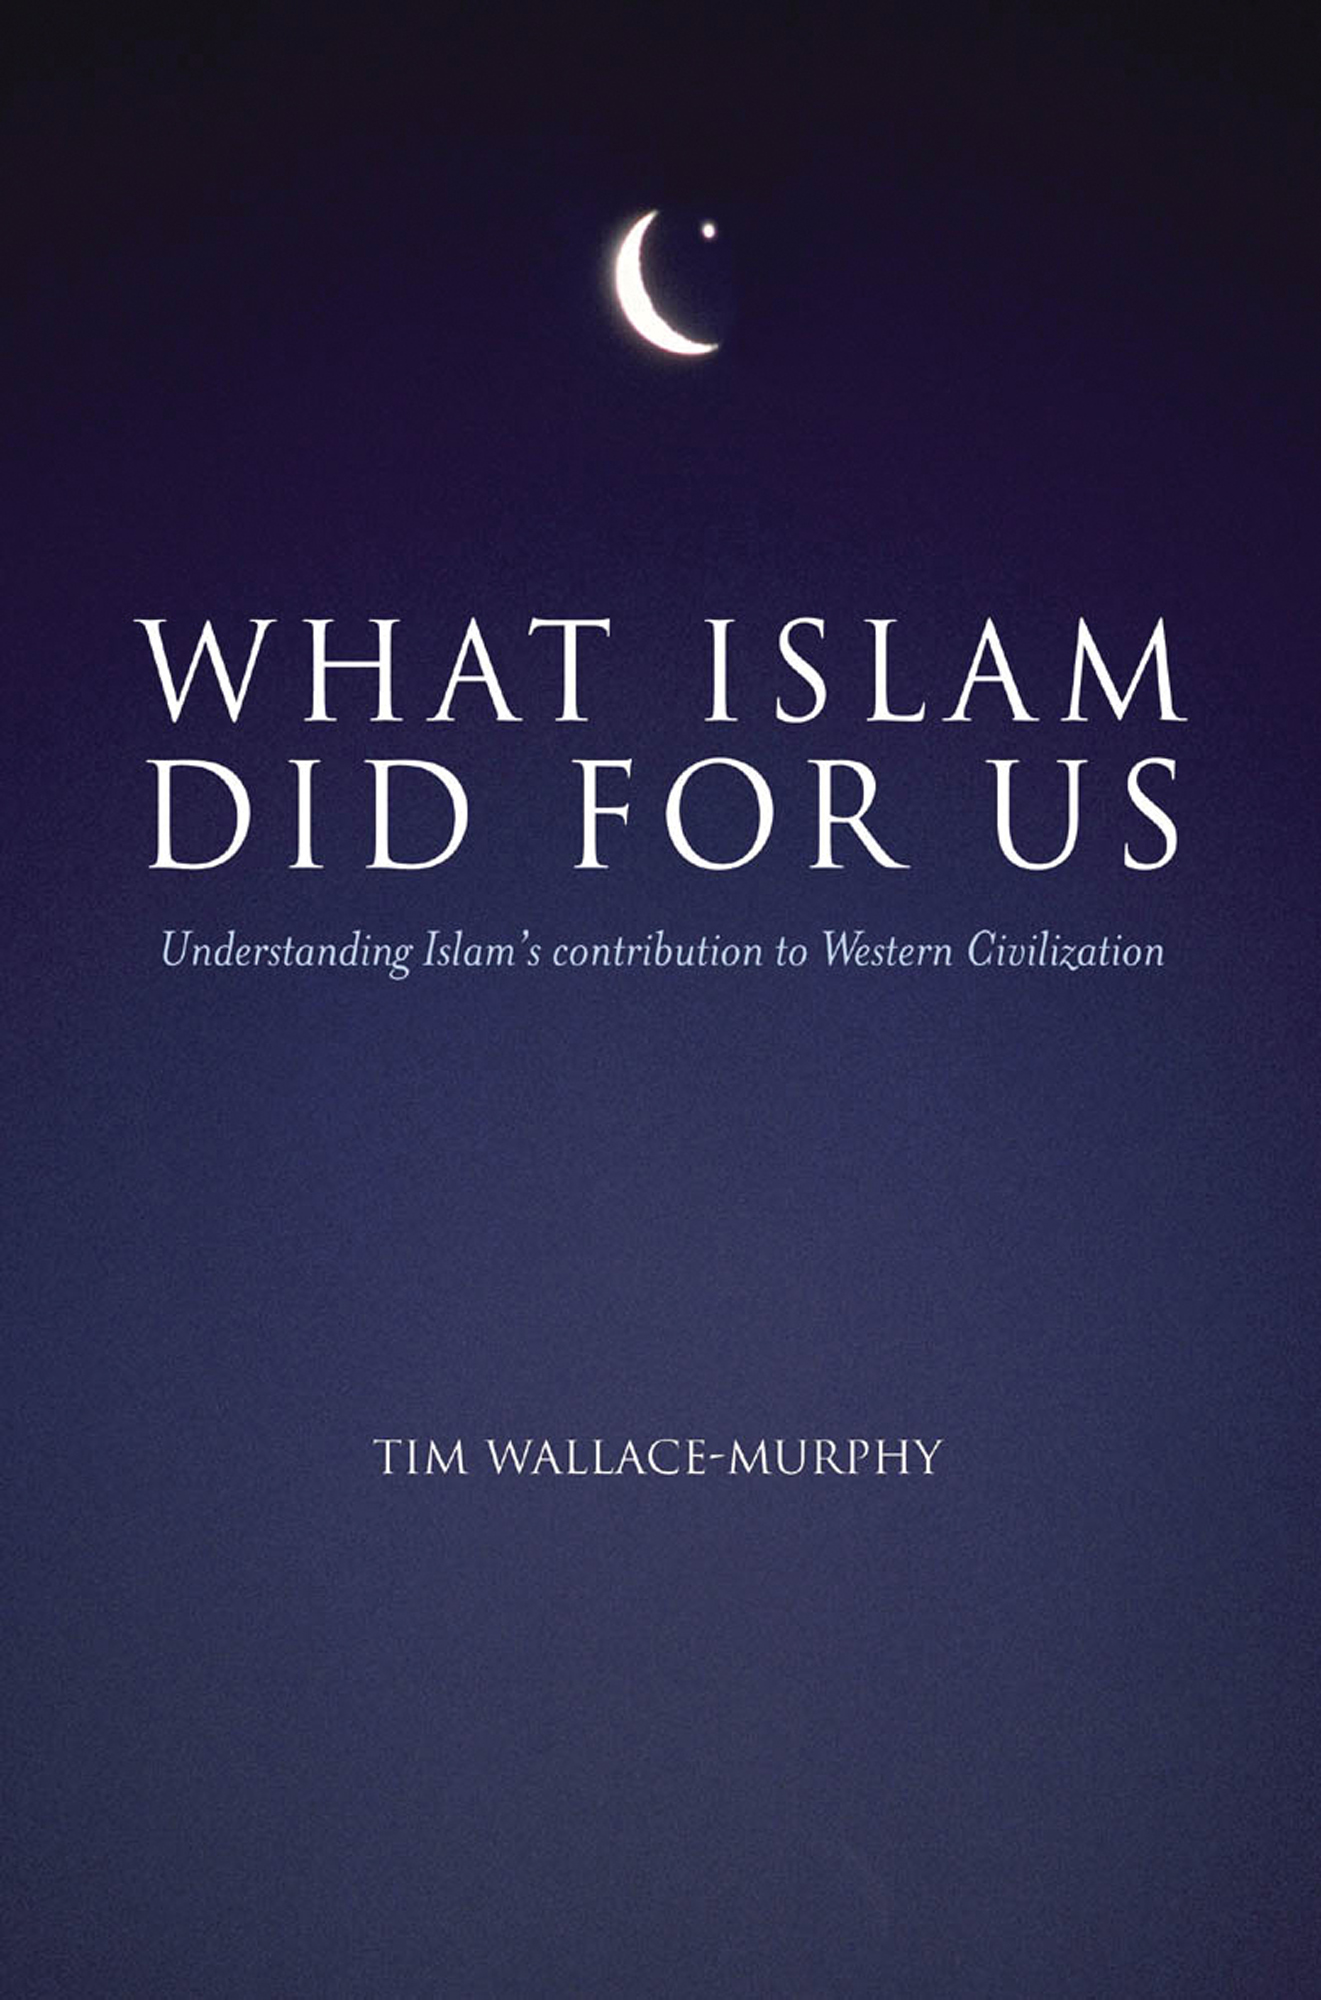 What Islam Did For Us: Understanding Islam's contribution to Western Civilization